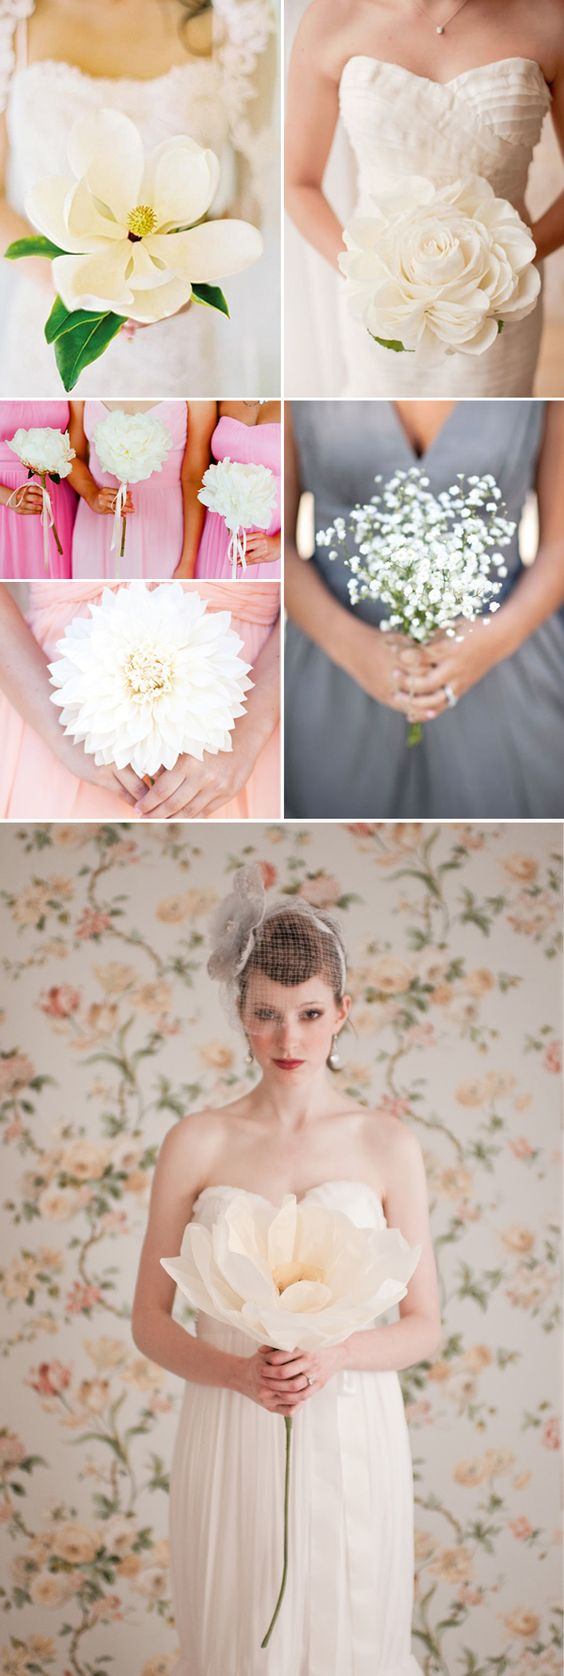 Praise Wedding » Wedding Inspiration and Planning » 15 Unique Single Bloom Bouquets: